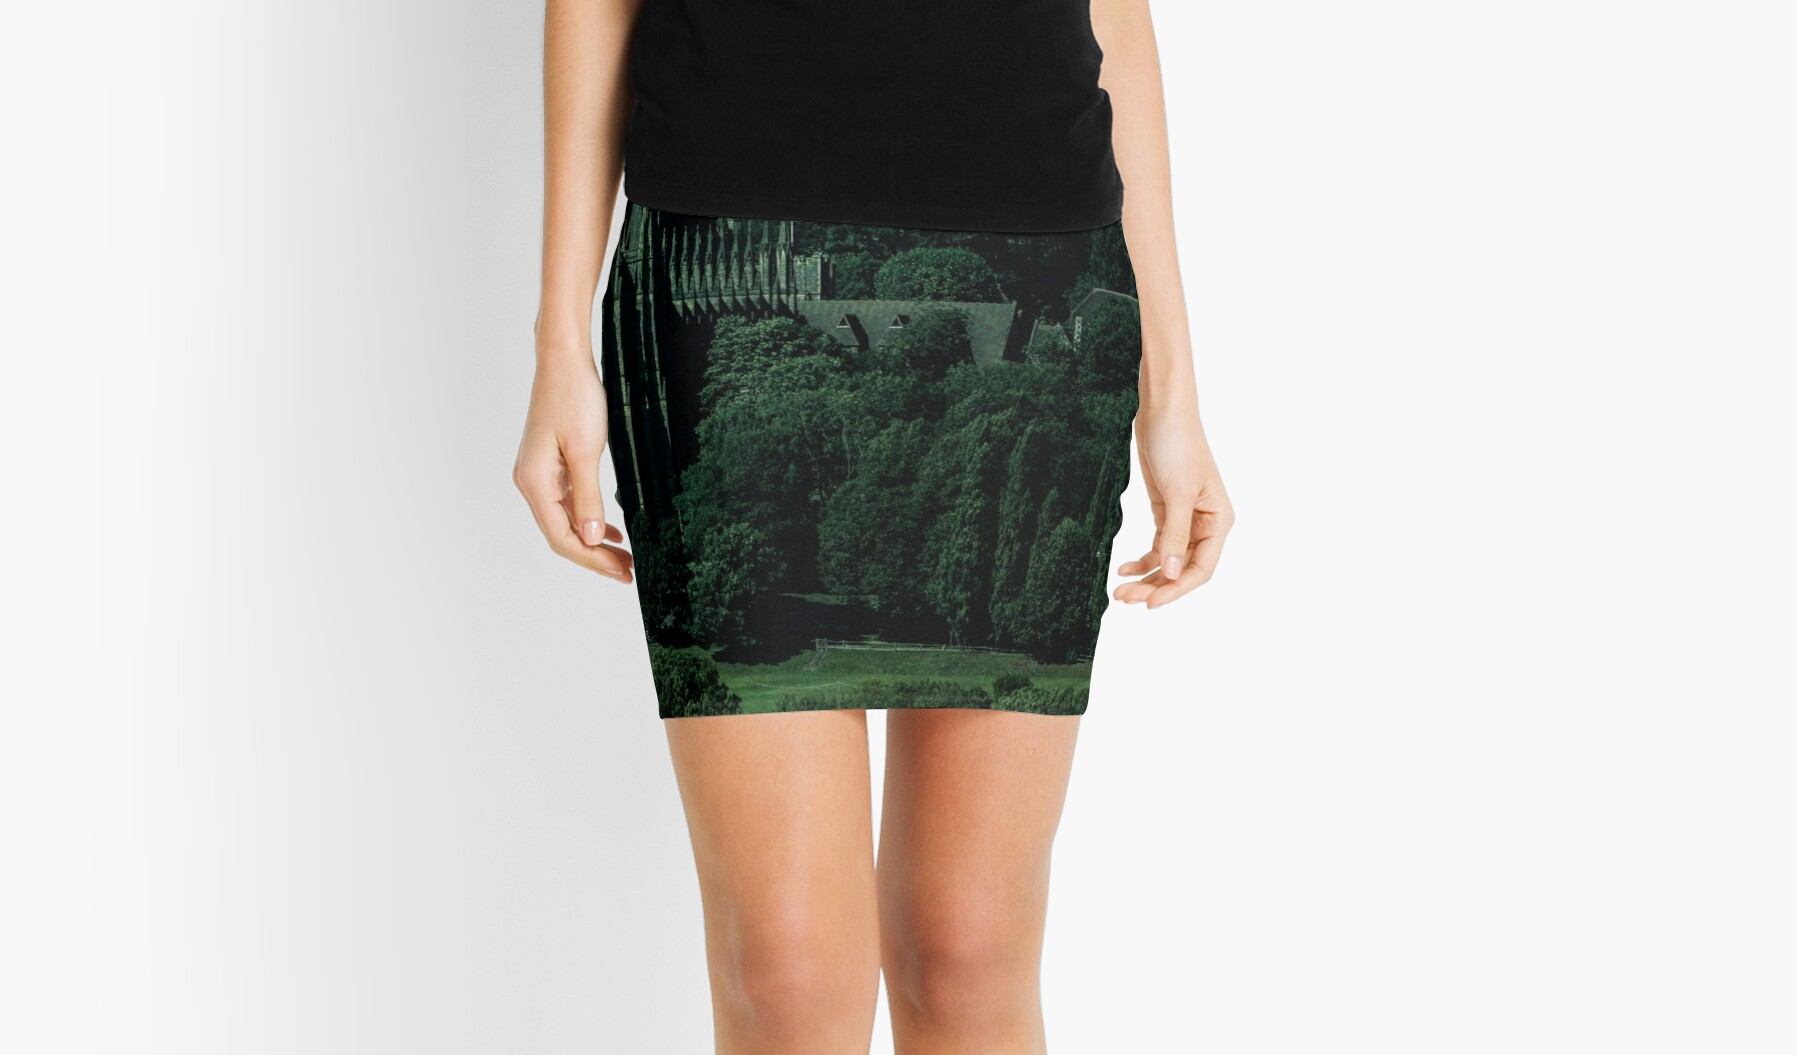 quot welcome to wizardry school quot pencil skirts by chris lord